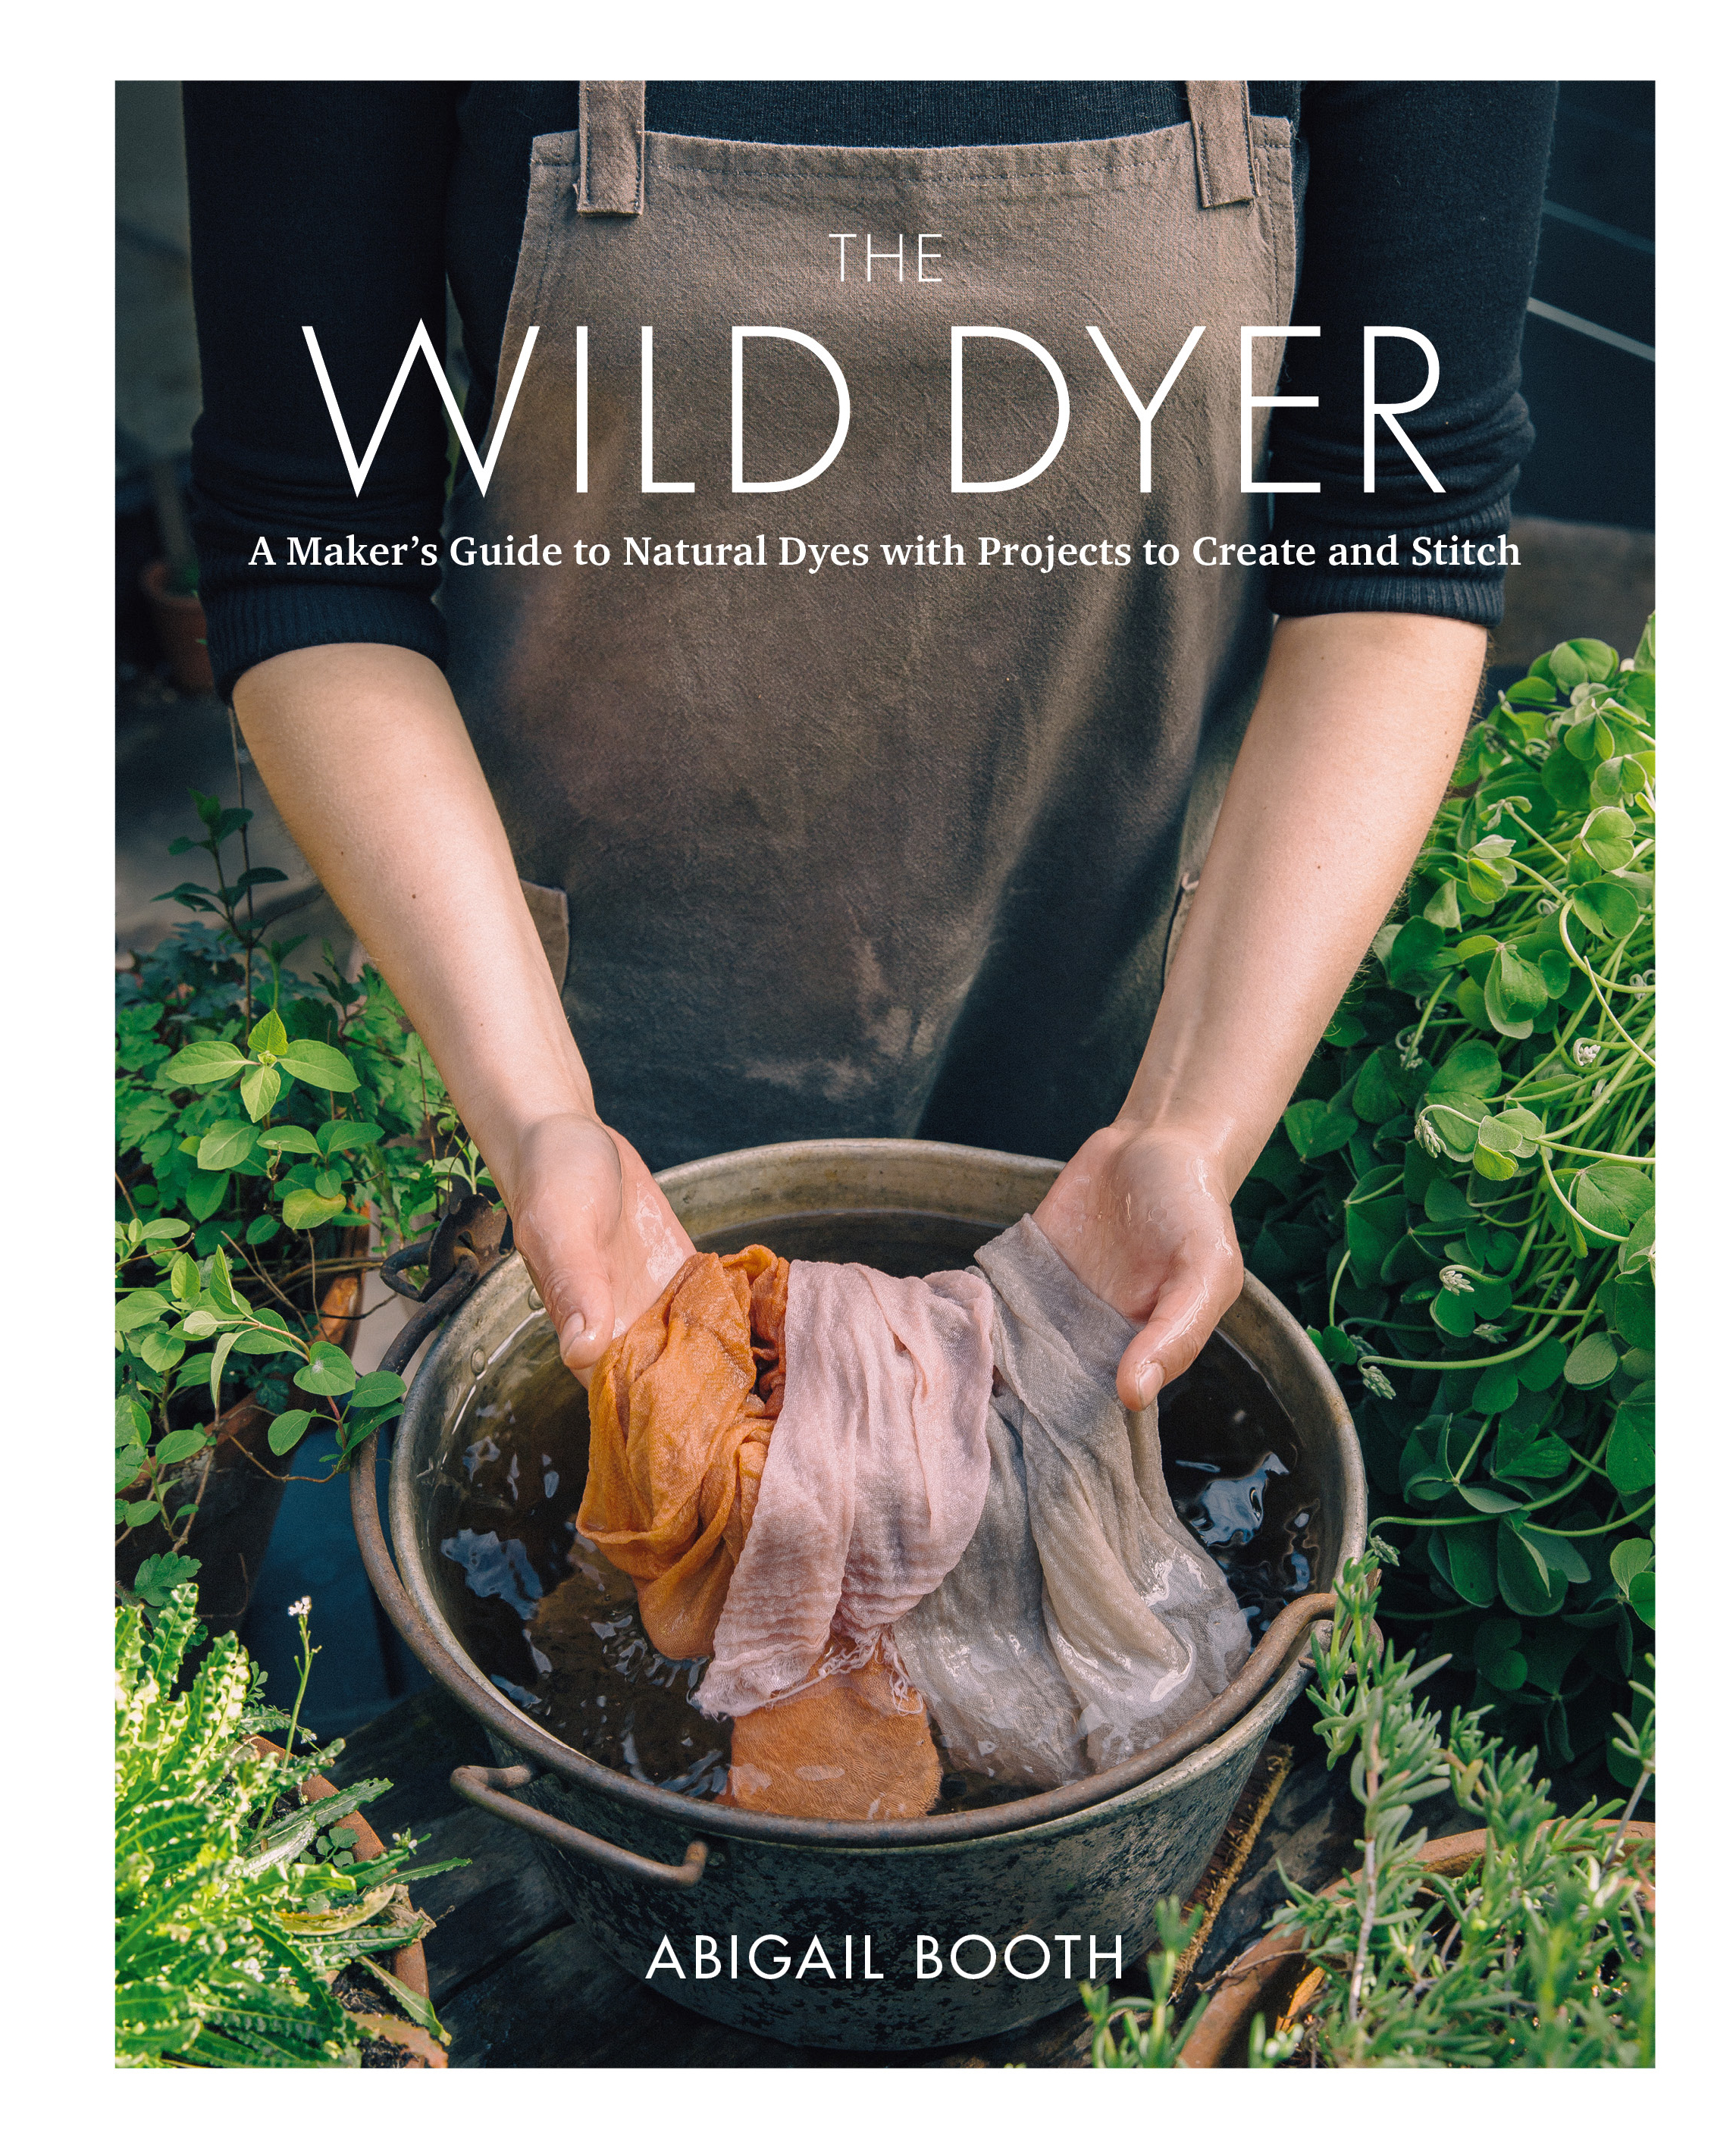 The Wild Dyer A Maker's Guide to Natural Dyes with Beautiful Projects to create and stitch